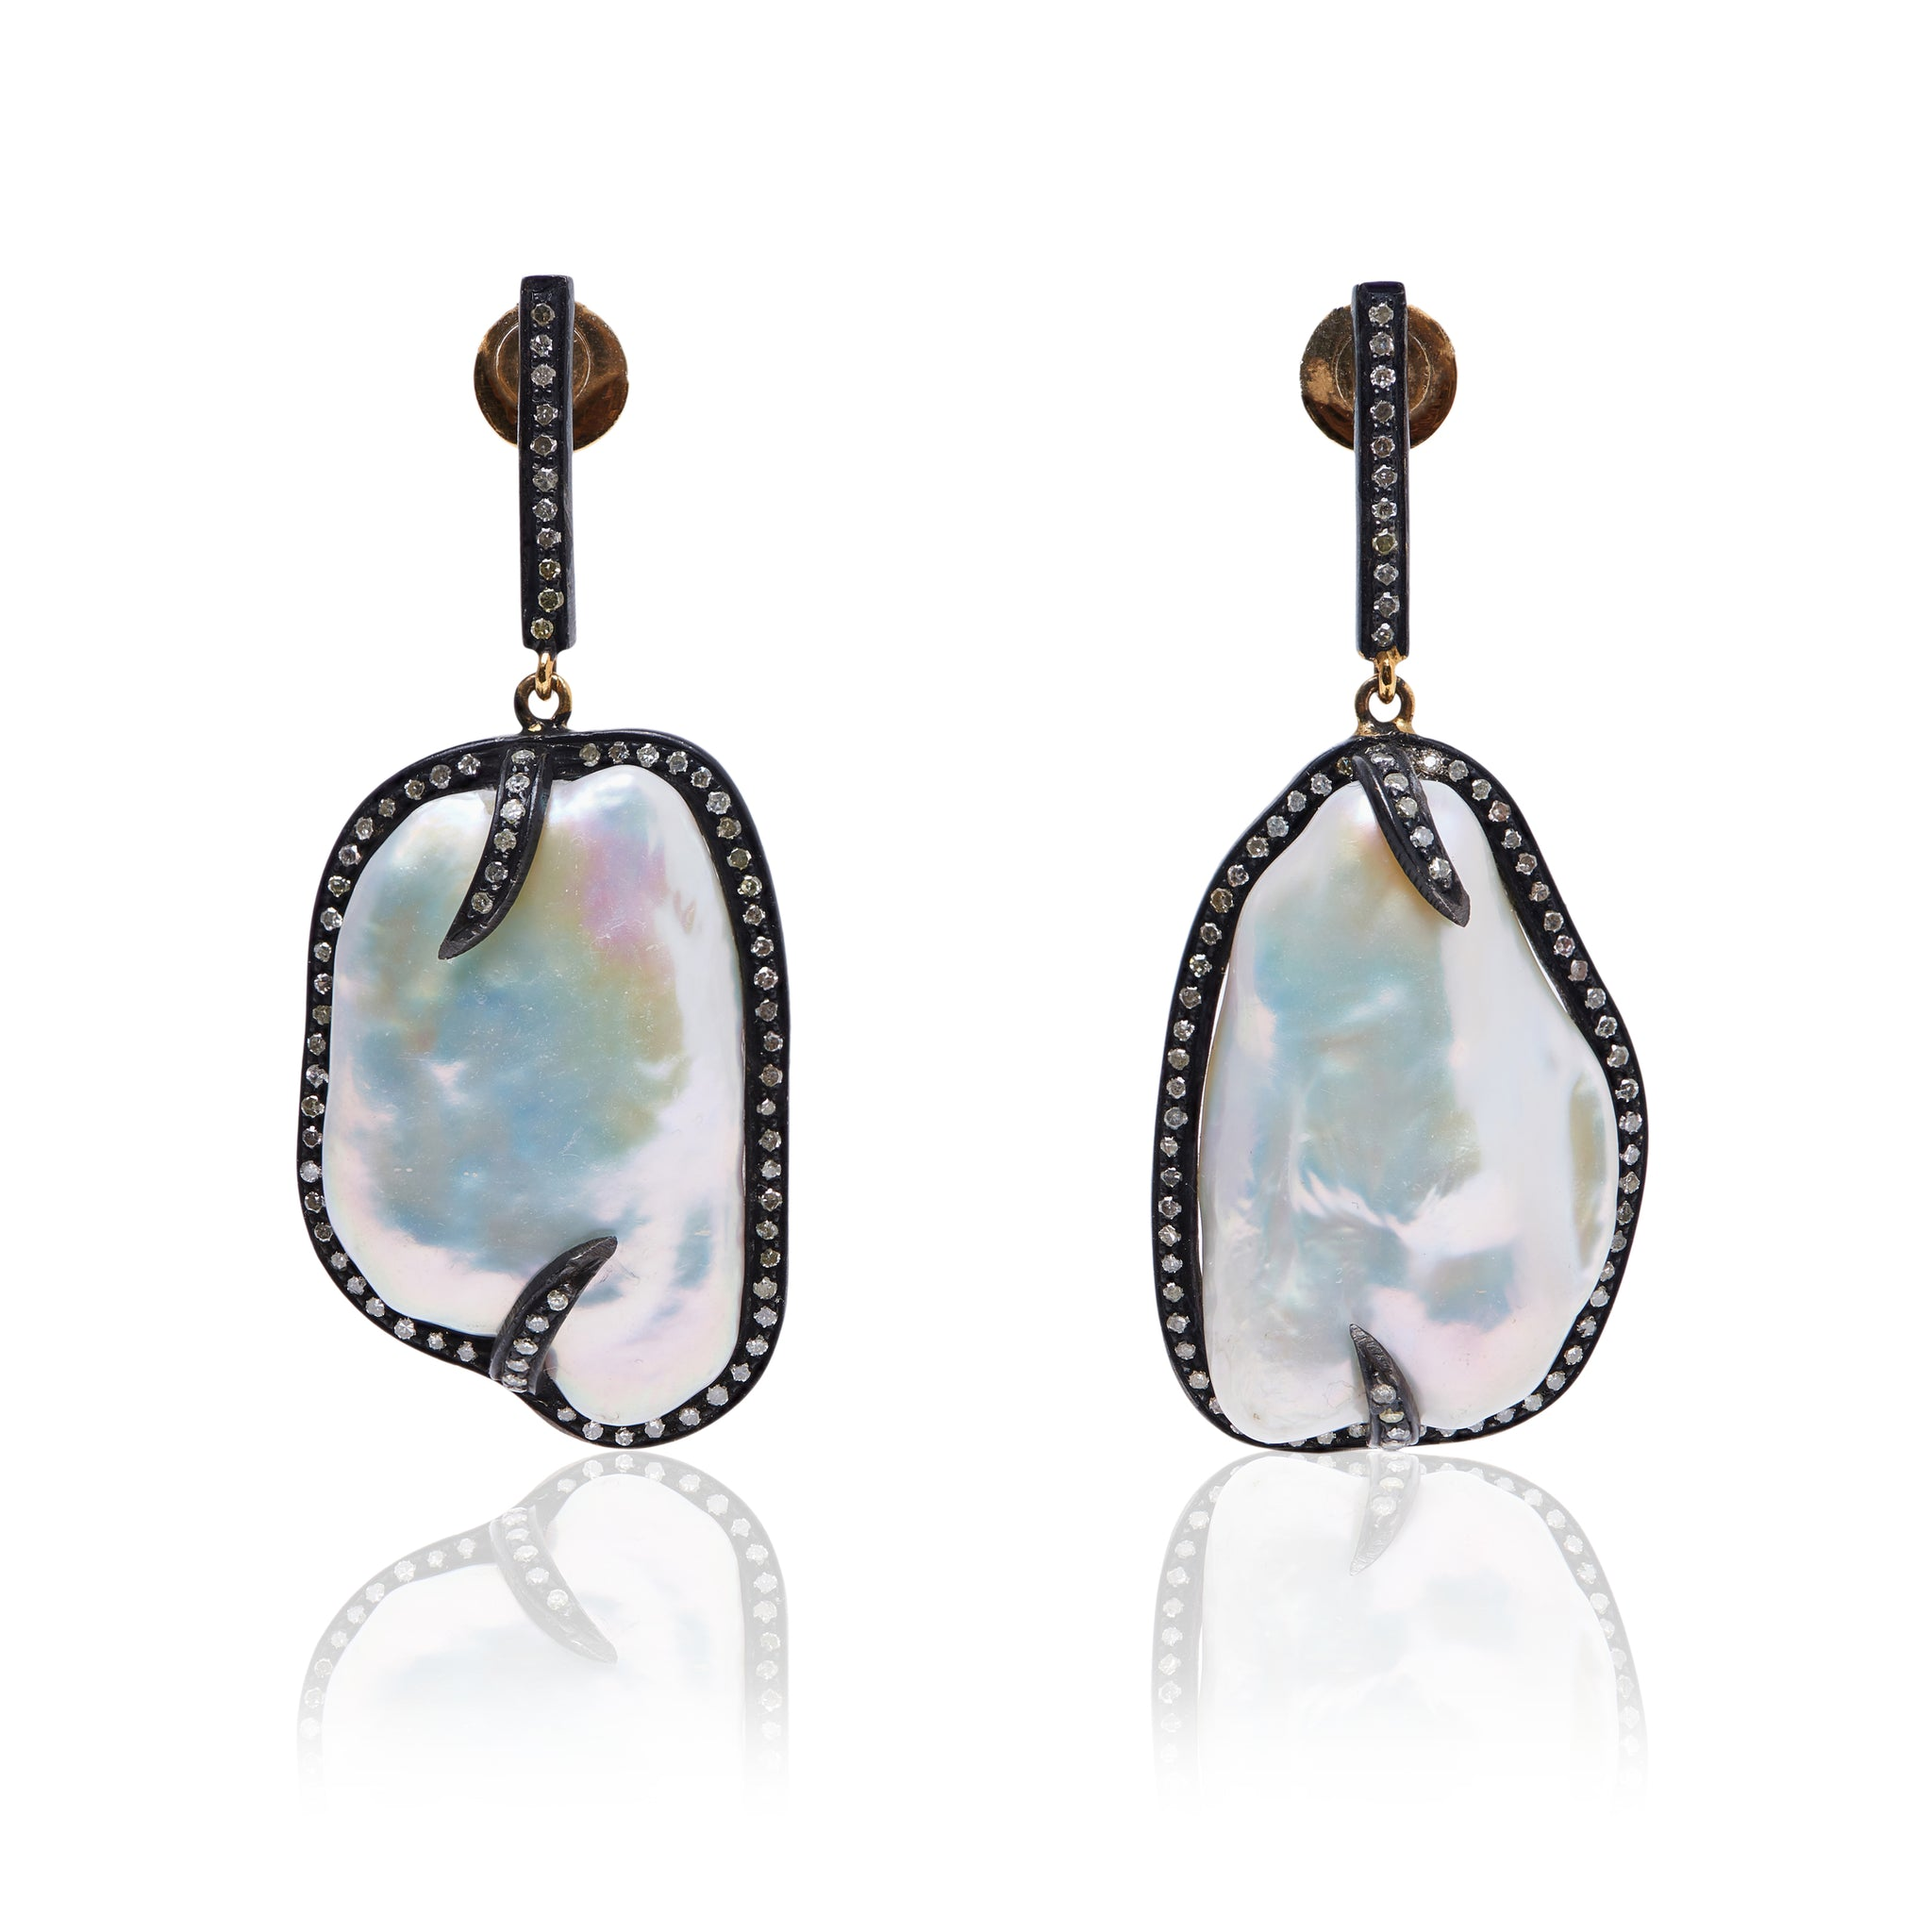 Diamond and Baroque Pearl earrings in oxidised sterling silver